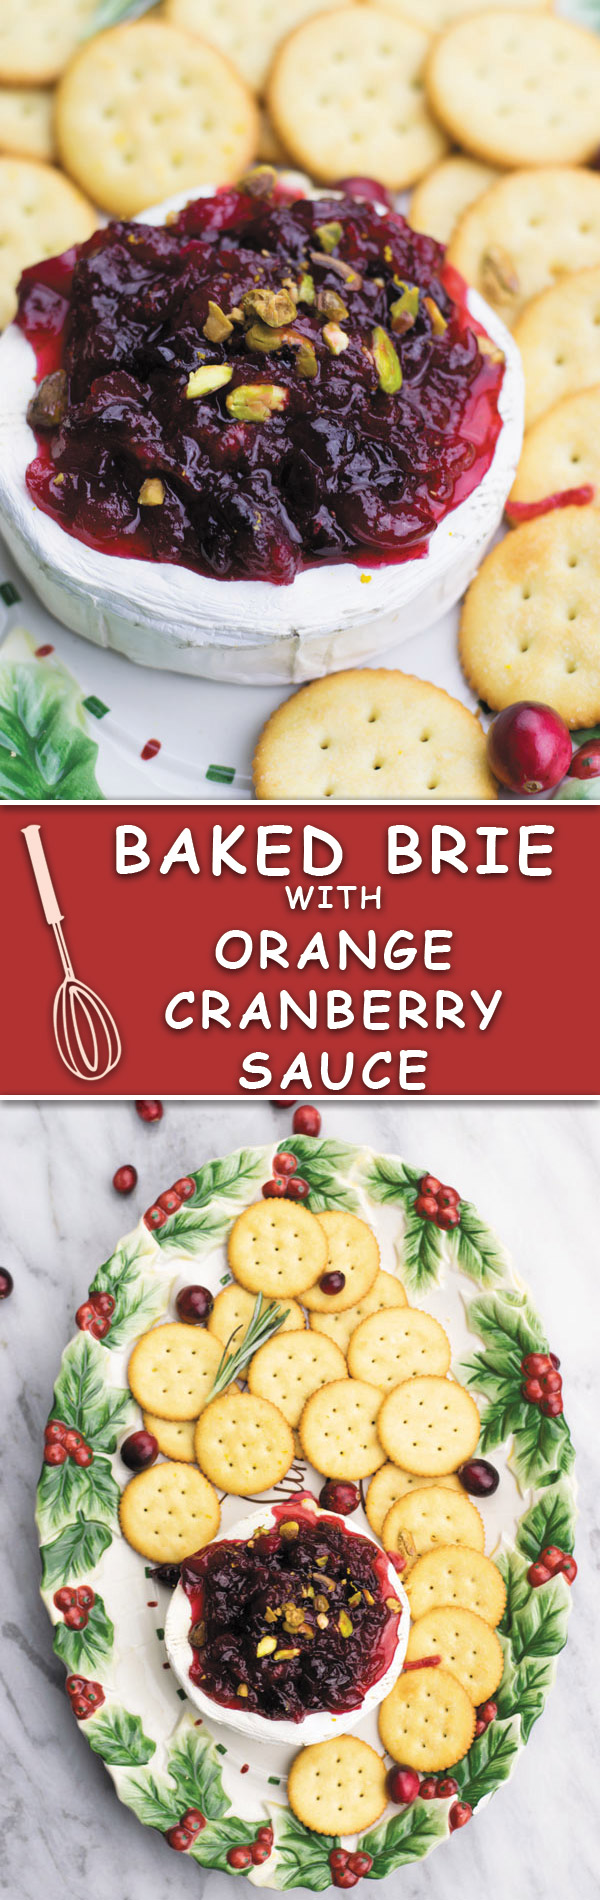 Baked brie with orange cranberry sauce - Delicious & simple holiday appetizer. Baked brie served with a simple yet beautifully flavored orange cranberry sauce! I can't stop eating this.